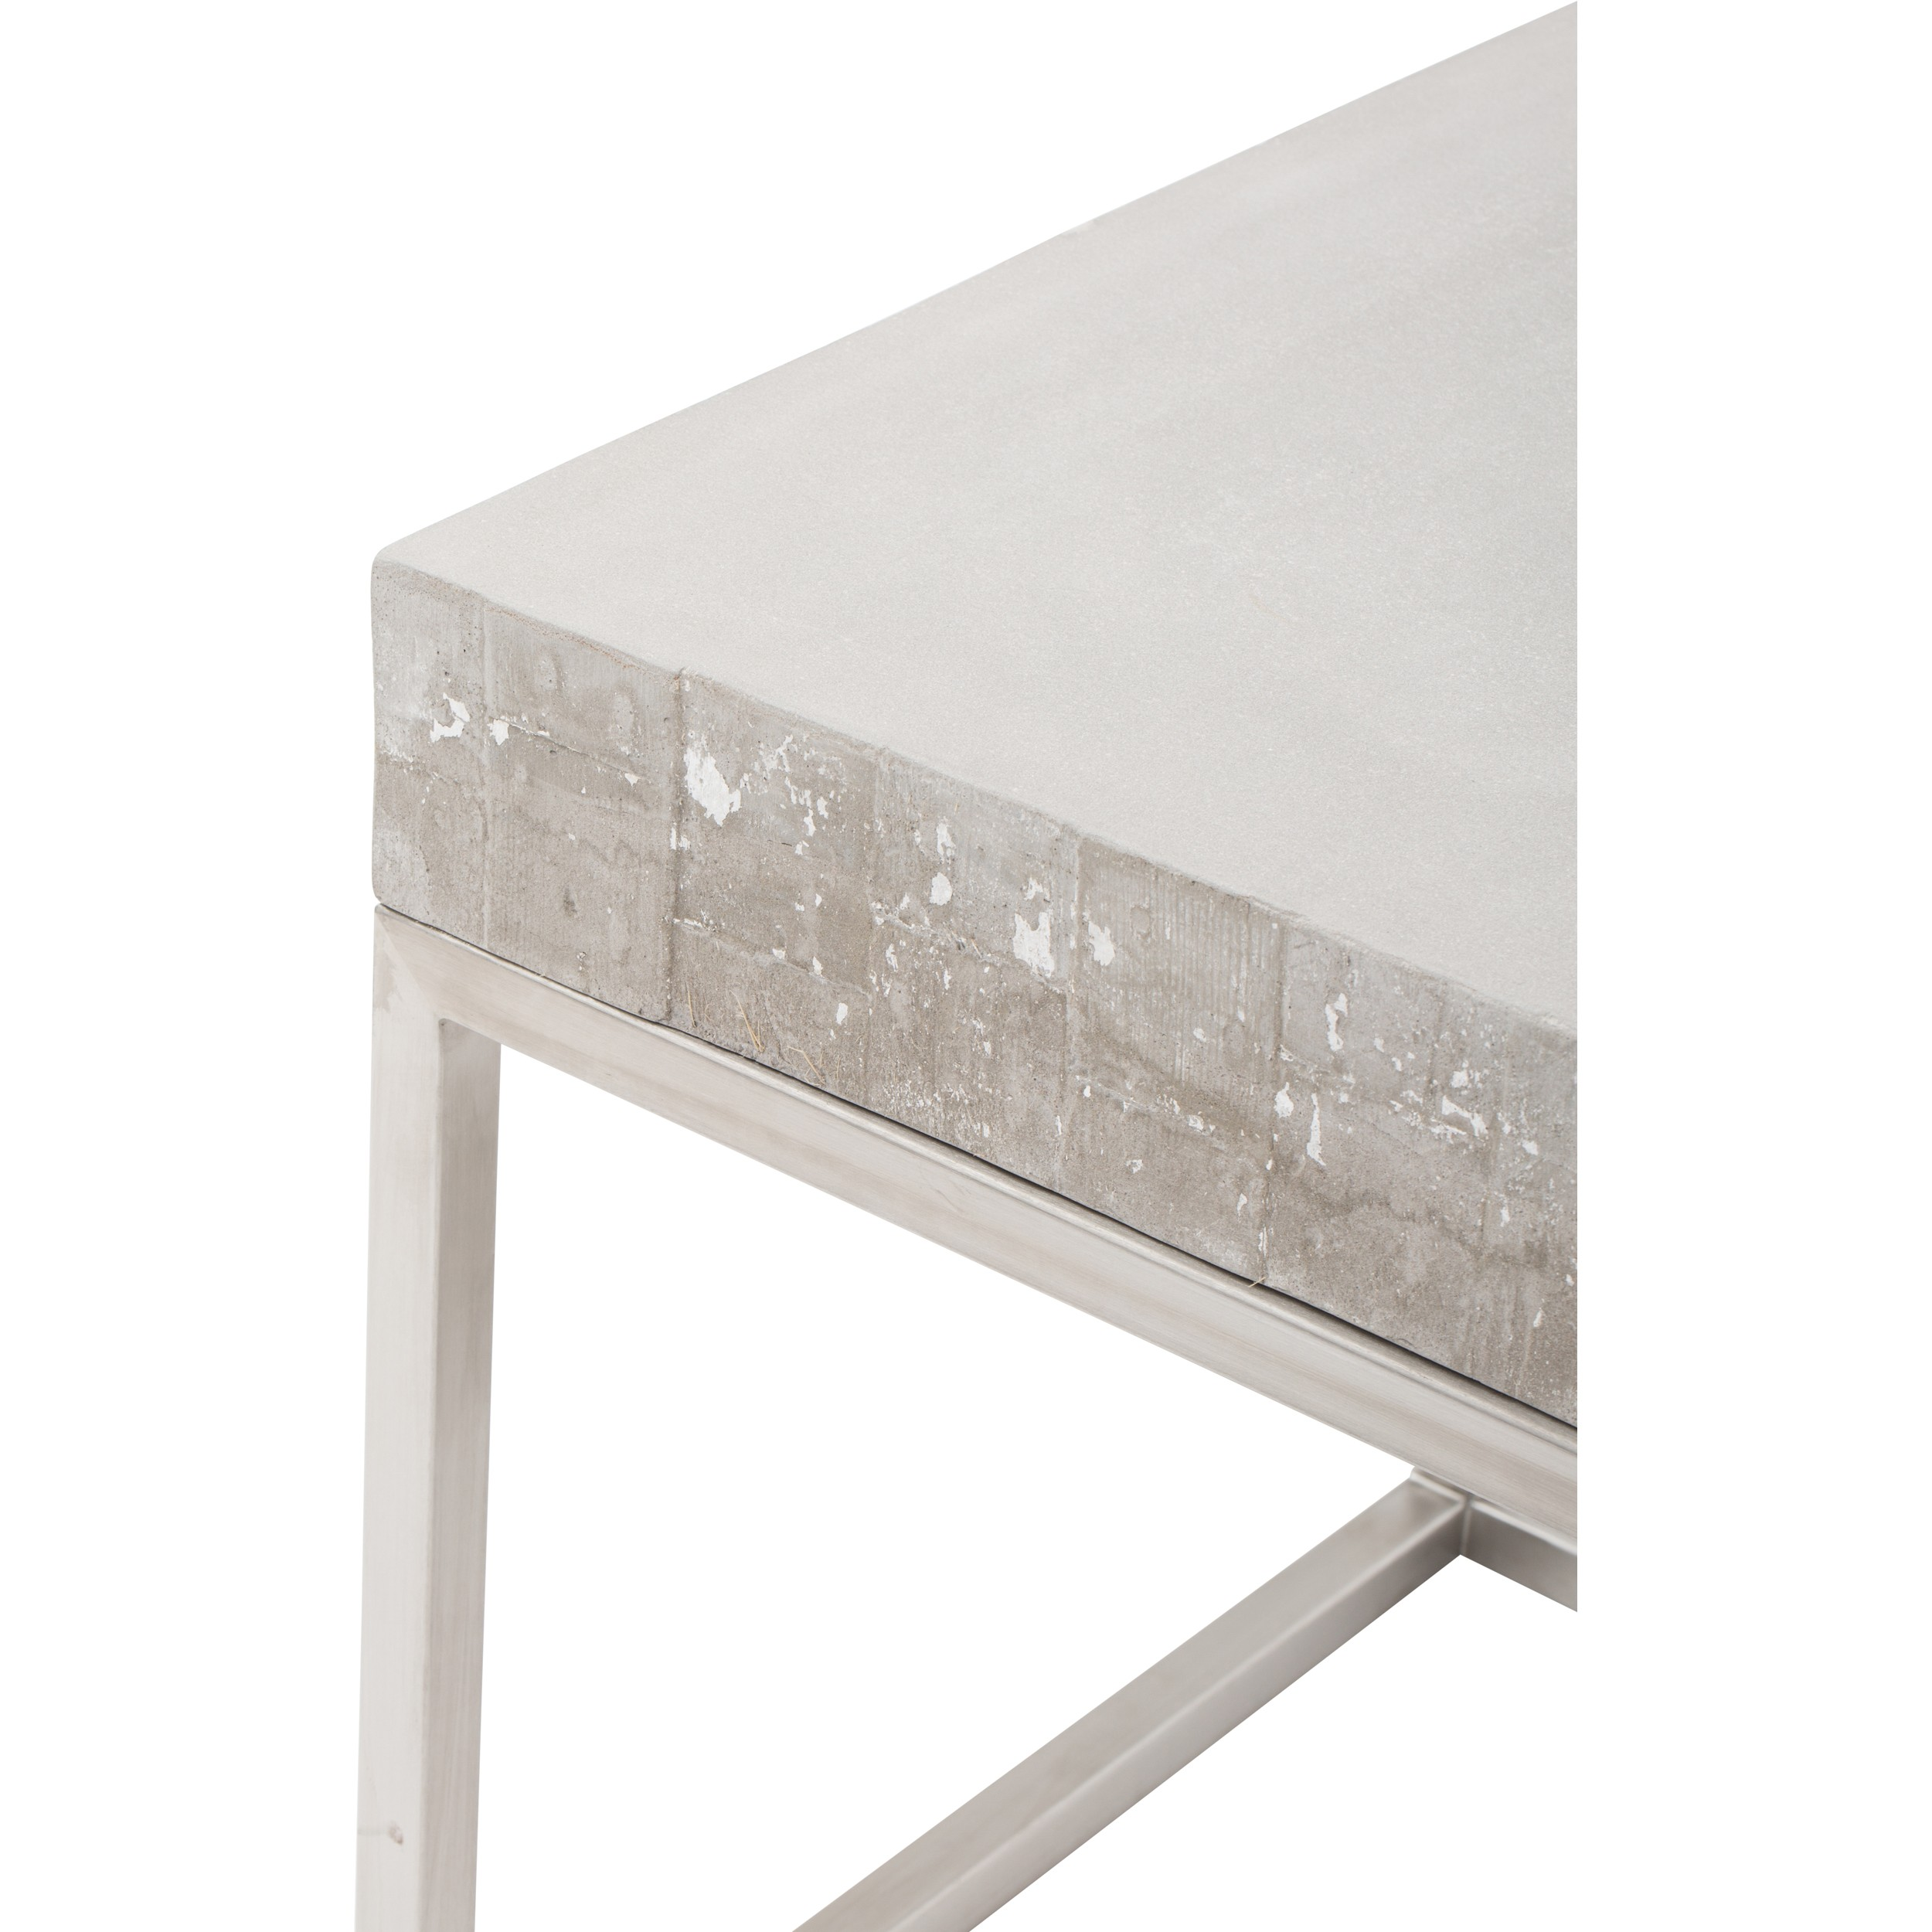 concrete and chrome end table accent tables outdoor furniture dark cherry wood round kitchen tablecloths lounge room bunnings dining gothic bbq grills hourglass patio umbrella